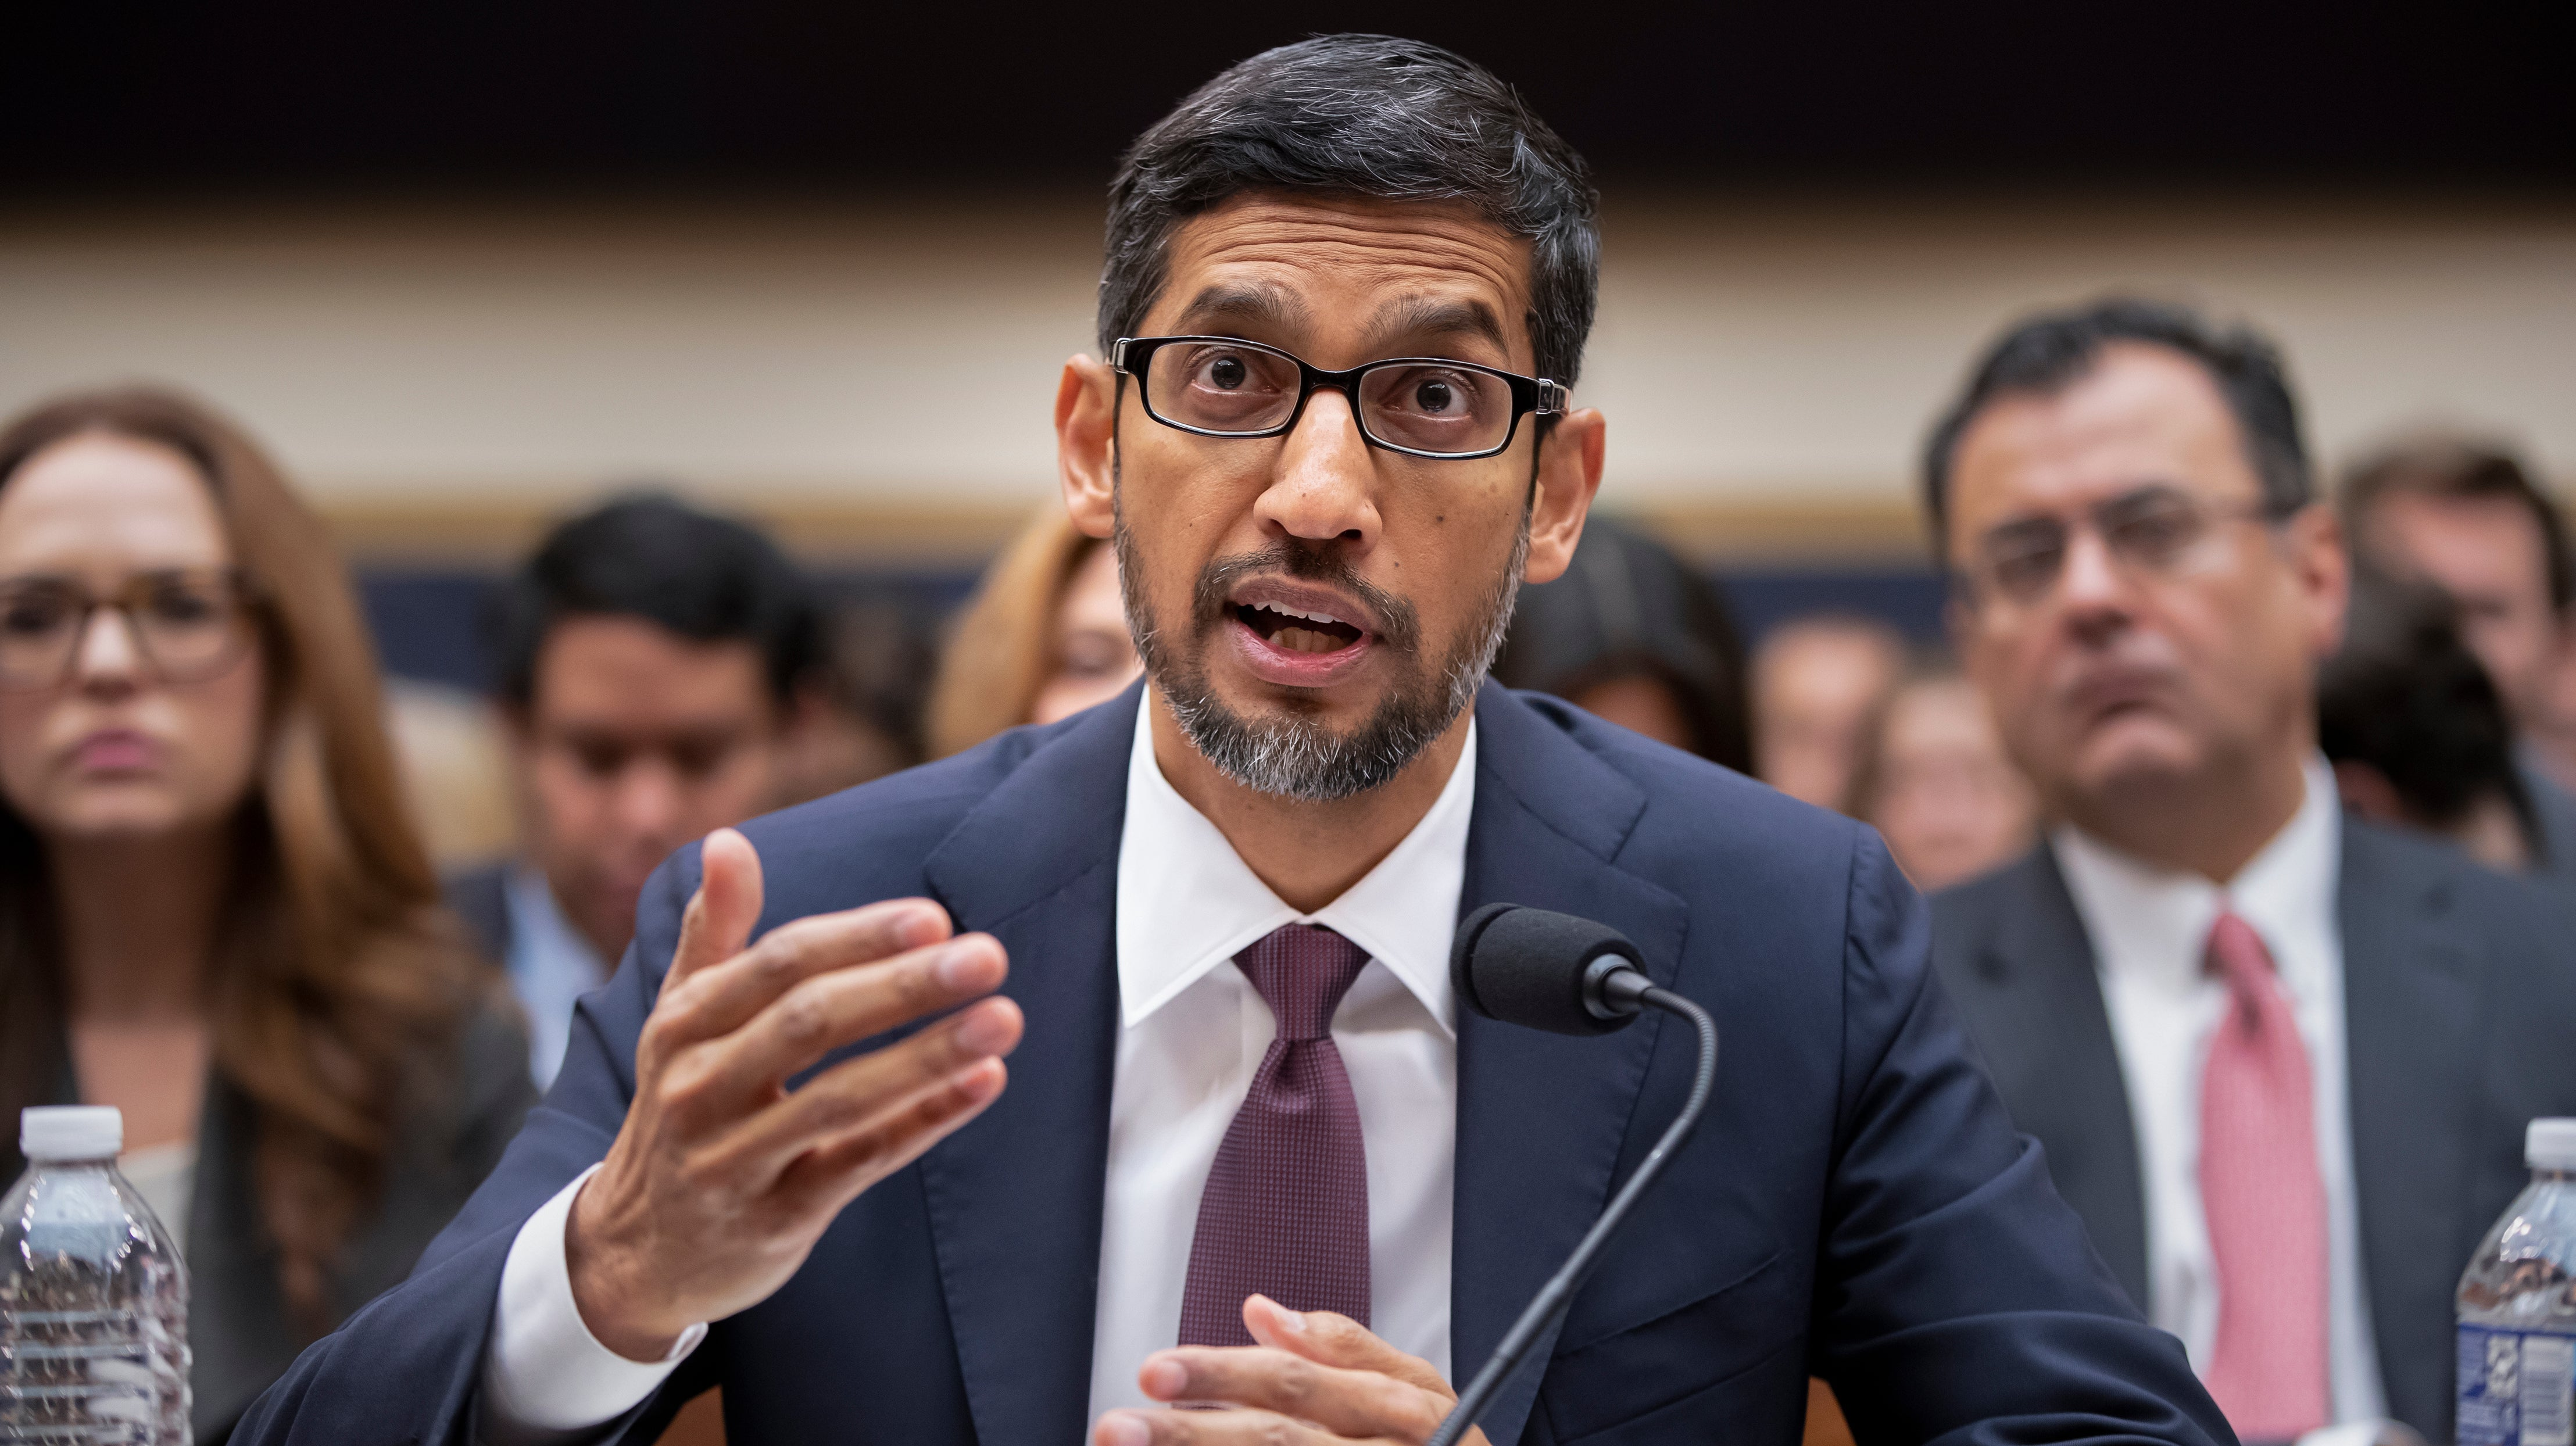 Sundar Pichai Tells Congress Google Has 'No Plans' To Launch Censored Search In China 'Right Now'